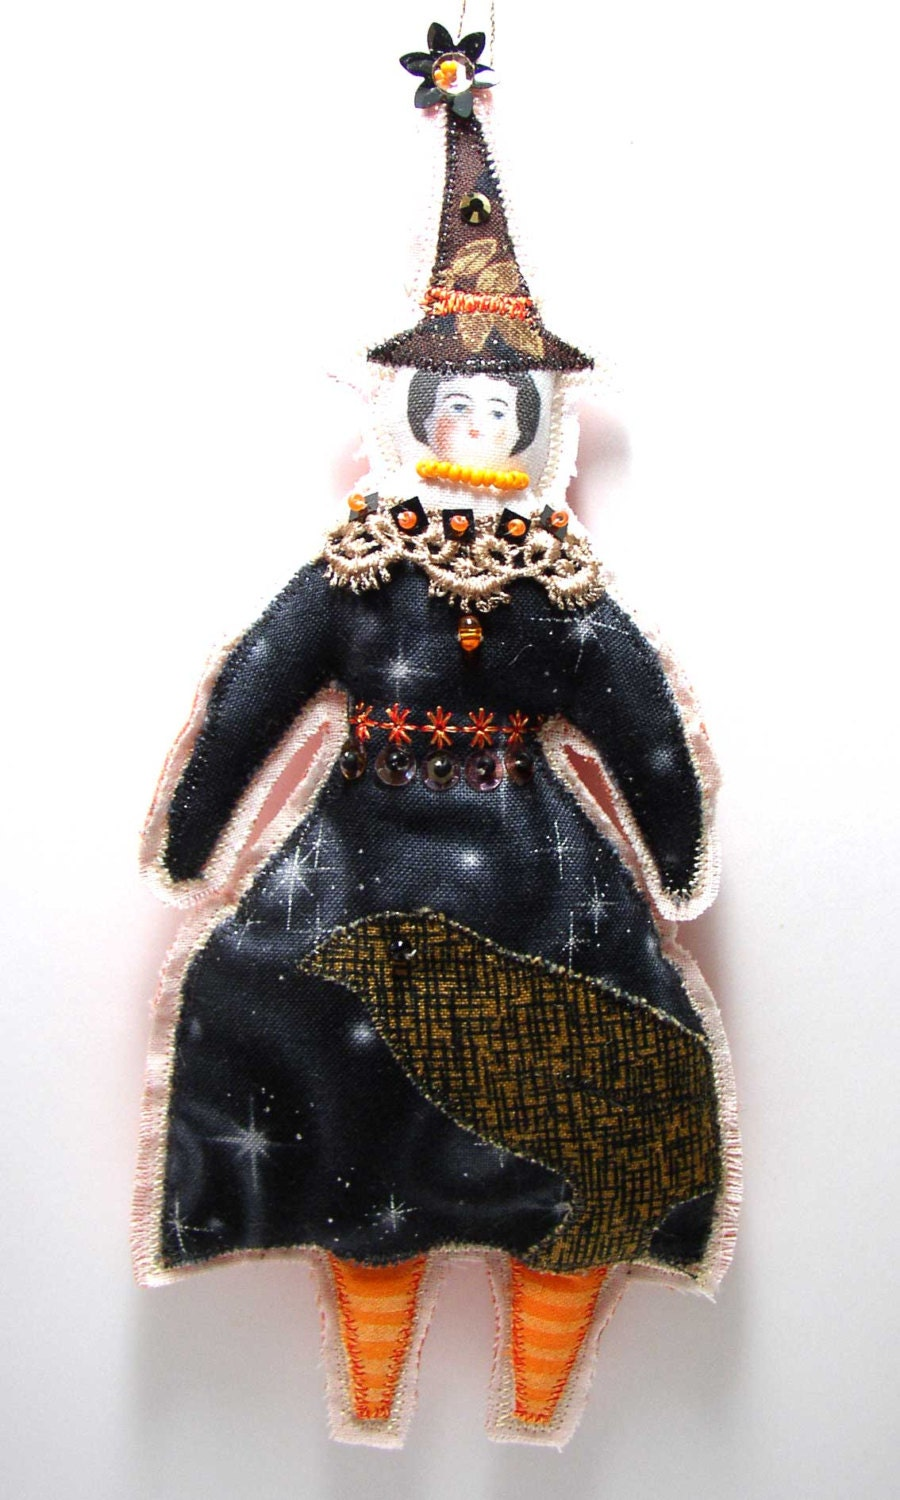 Witch Doll Ornament Textile Art Cloth Doll  Halloween Ornament  Lady Doll OOAK Witch with a Bird - theresahutnick